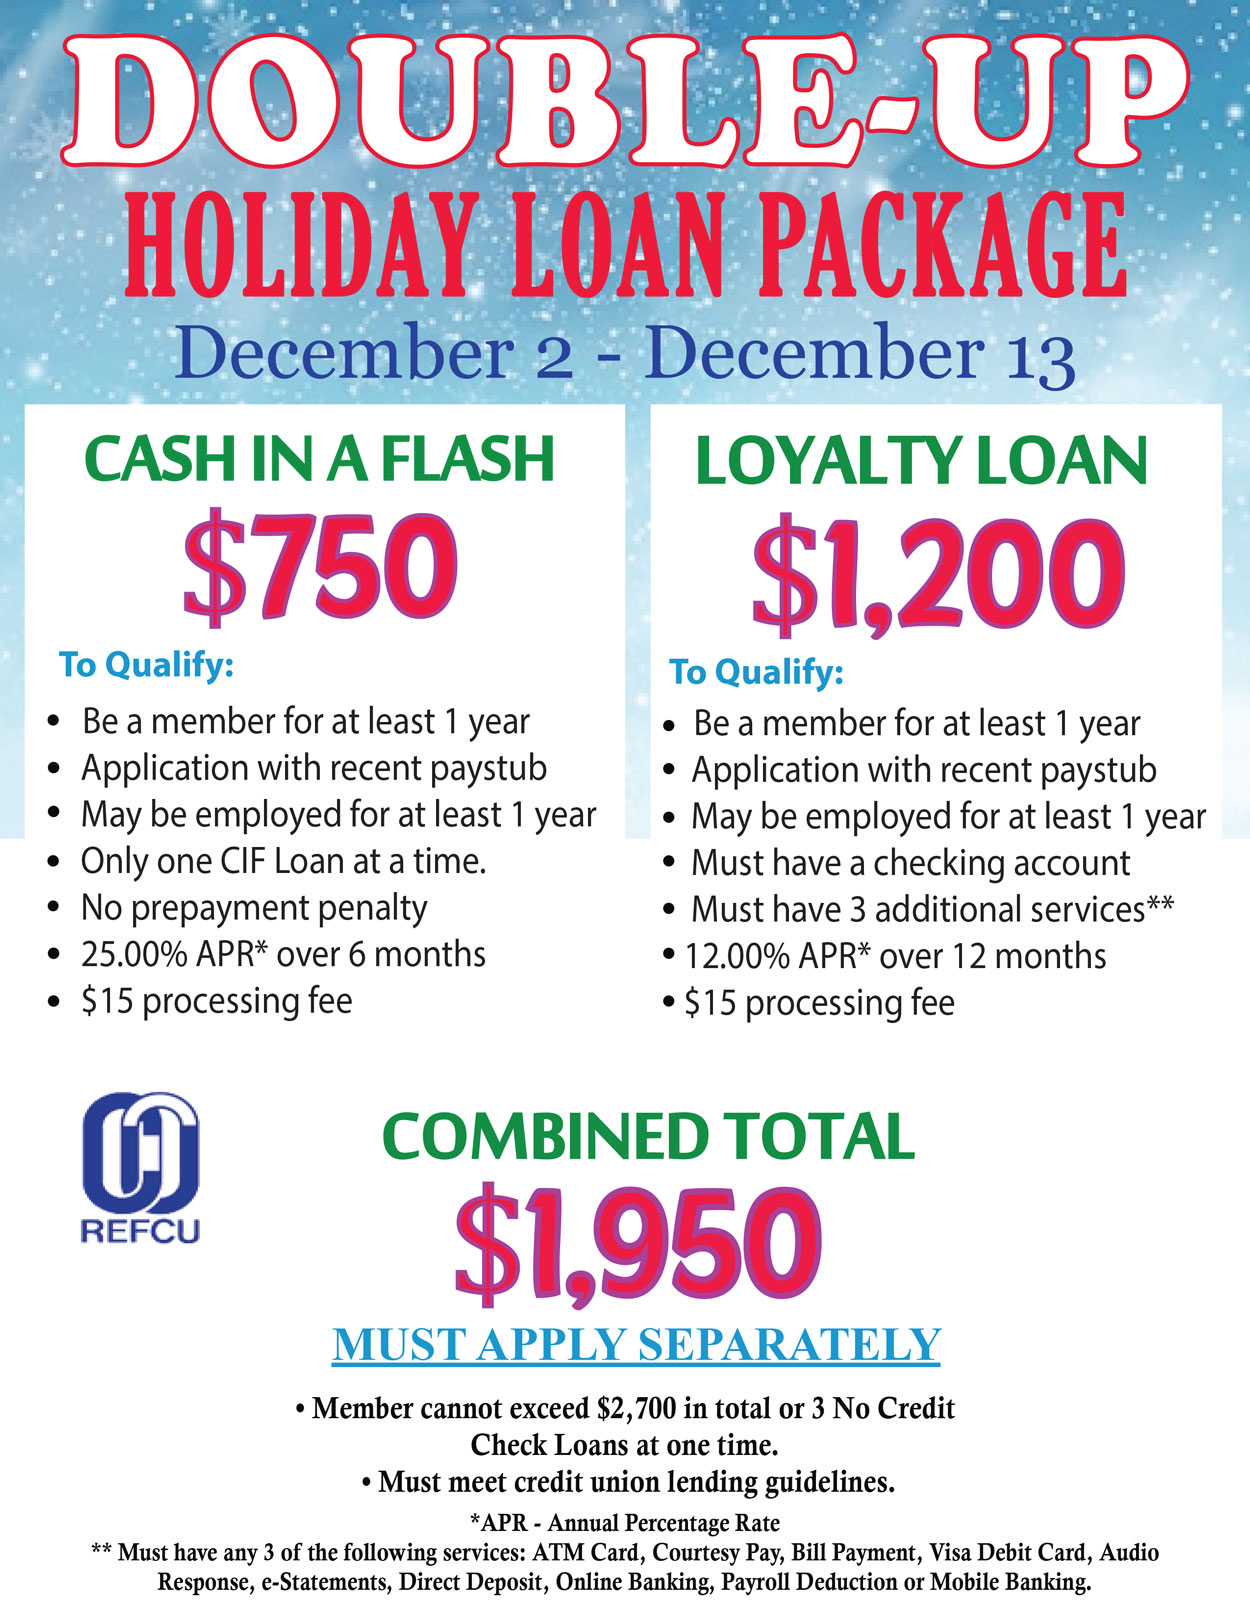 Double Up Holiday Loan Package available December 2 - December 13. Borrow up to $1950